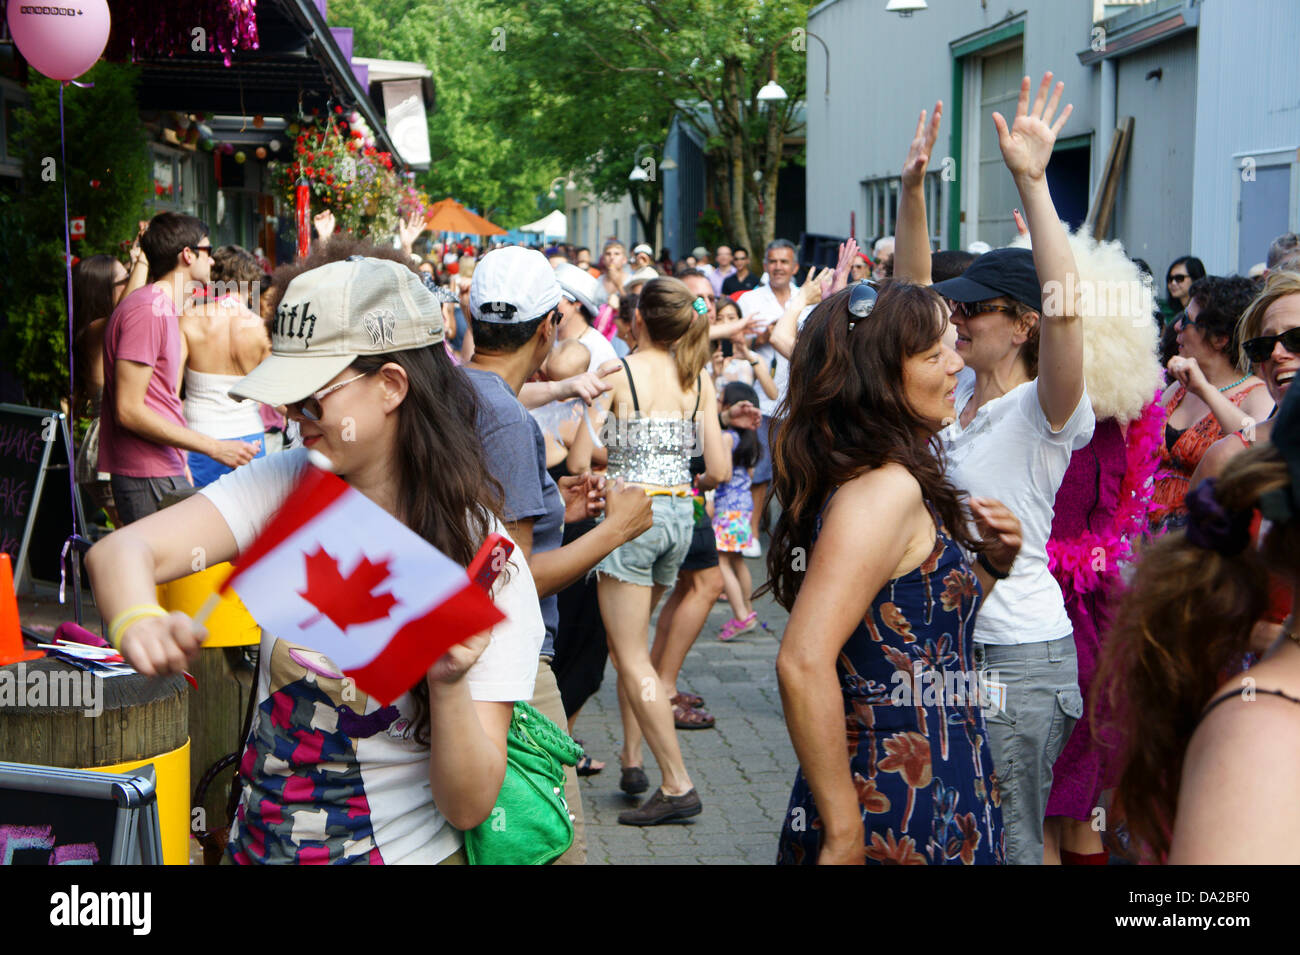 people-disco-dancing-outdoors-at-canada-